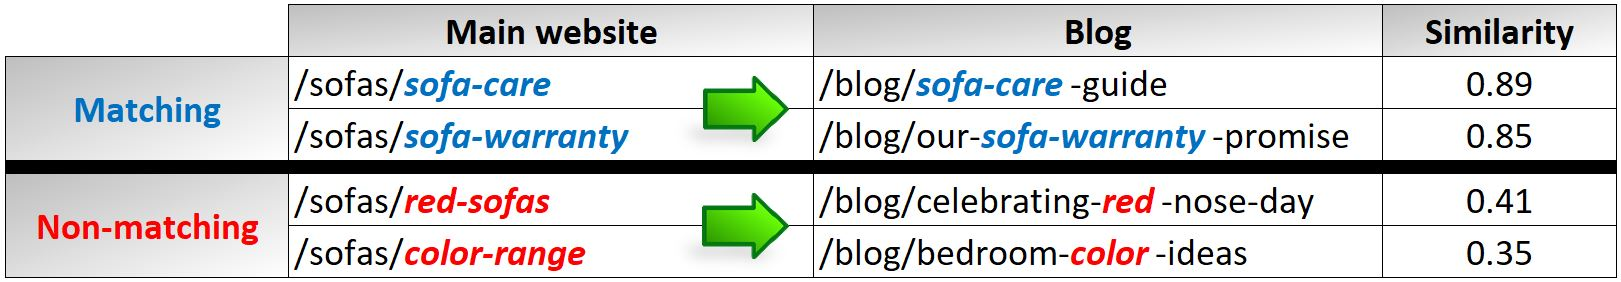 Example of finding gaps and similarities in the blog